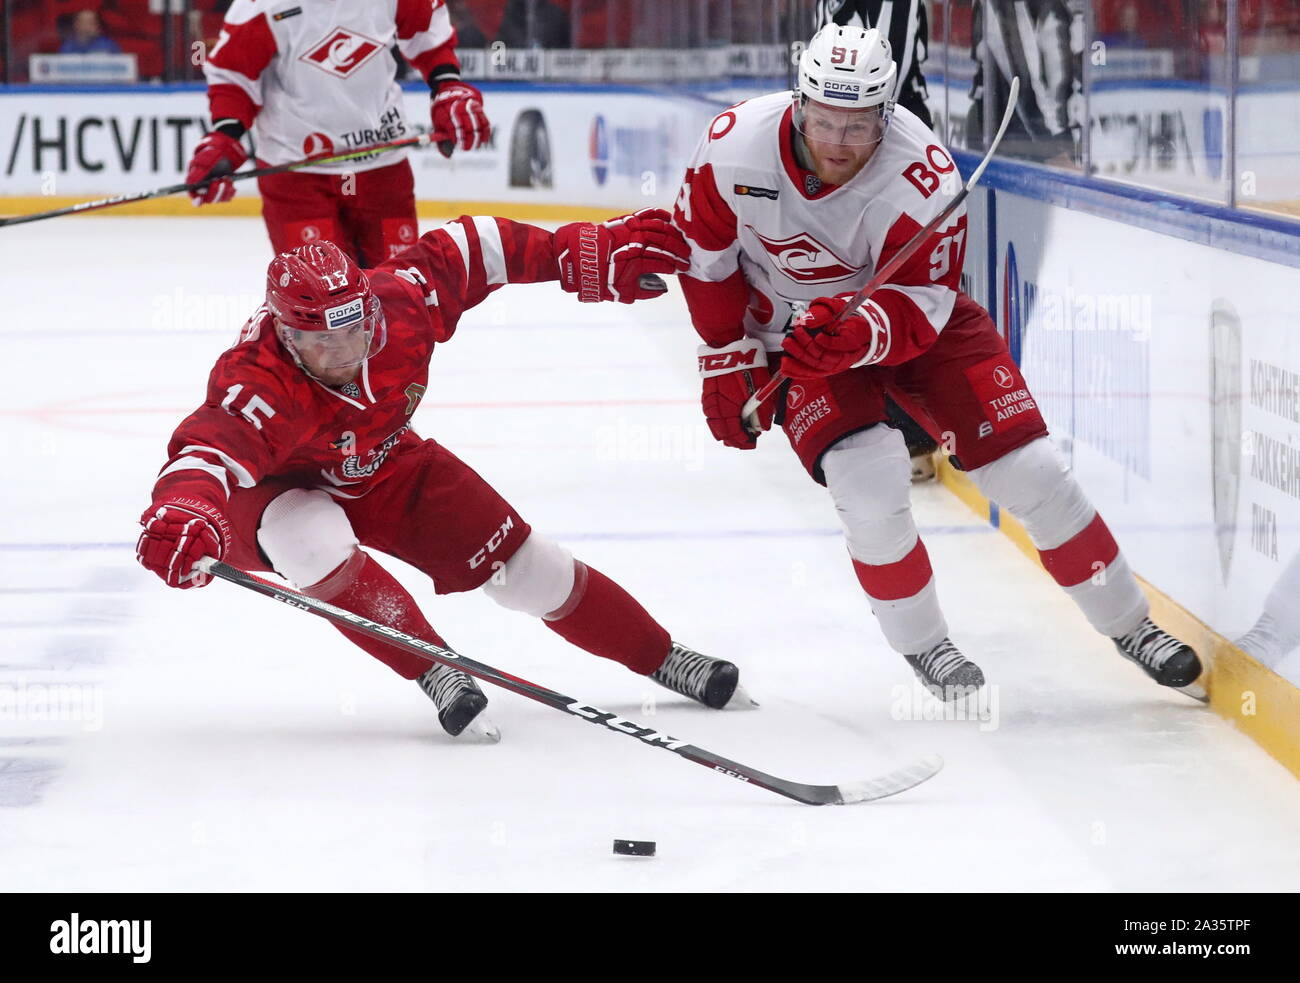 Moscow, Russia. 05th Oct, 2019. HC Vityaz Moscow Region's Jakub Jerabek (L) and HC Spartak Moscow's Mikhail Yunkov in action in their 2019/20 KHL Regular Season ice hockey match, at the Vityaz Arena. Sergei Fadeichev/TASS Credit: ITAR-TASS News Agency/Alamy Live News Credit: ITAR-TASS News Agency/Alamy Live News Stock Photo